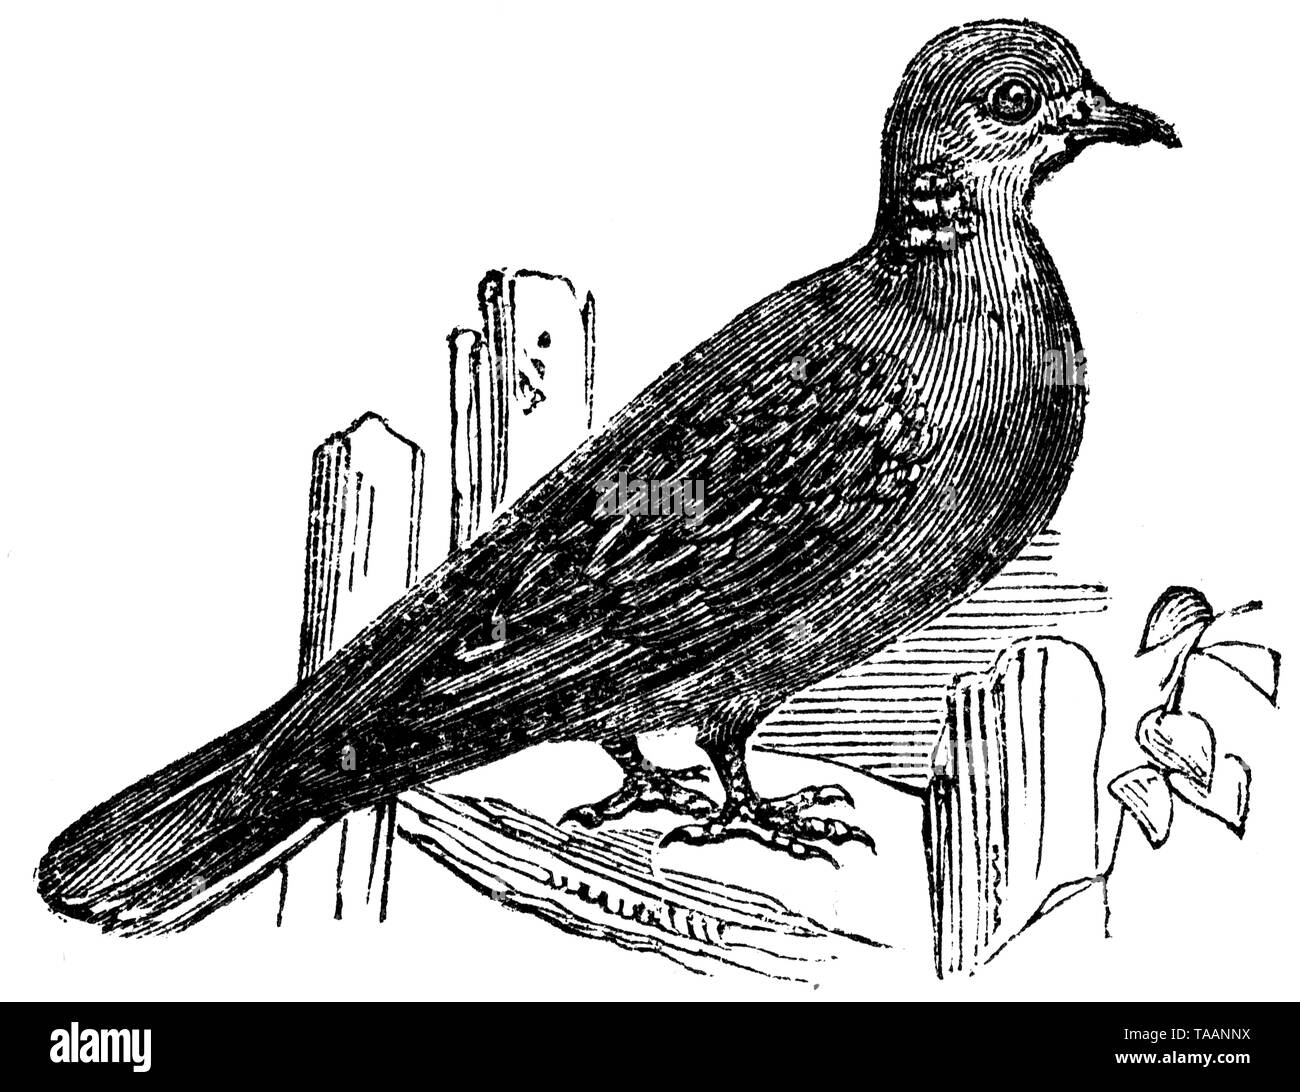 Wood cut engraved illustration, taken from 'The Treasury of Natural History' by Samuel Maunder, published 1848 Stock Photo